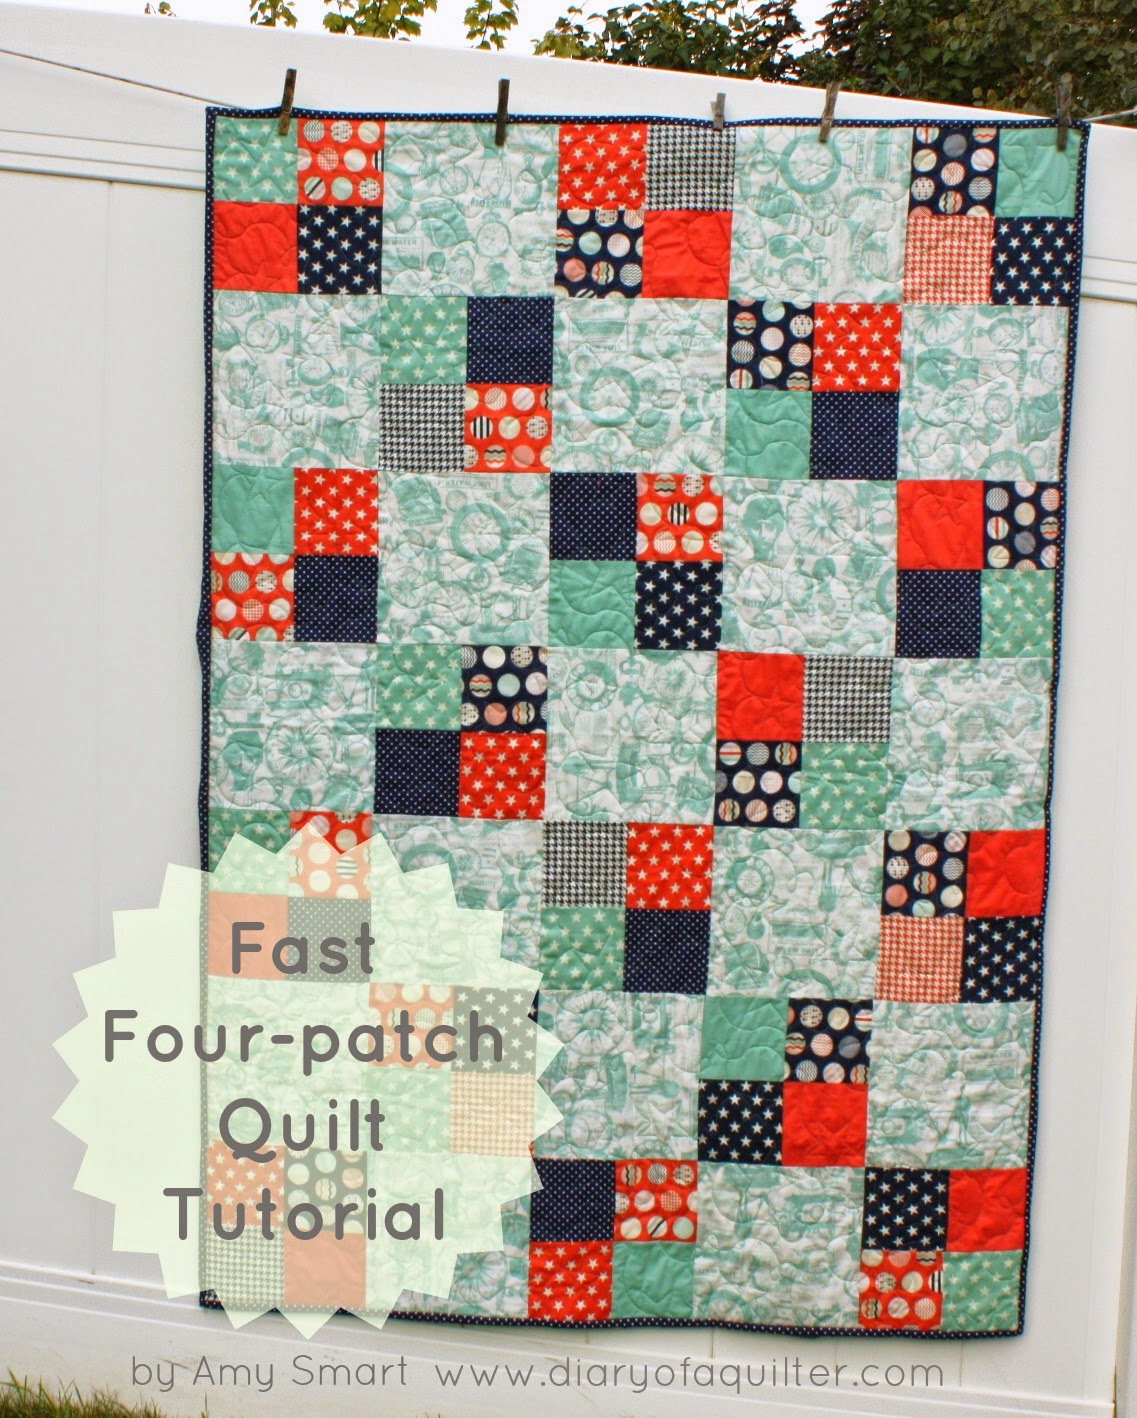 Fast four patch quilt tutorial diary of a quilter a quilt blog fast four patch quilt tutorial jeuxipadfo Gallery